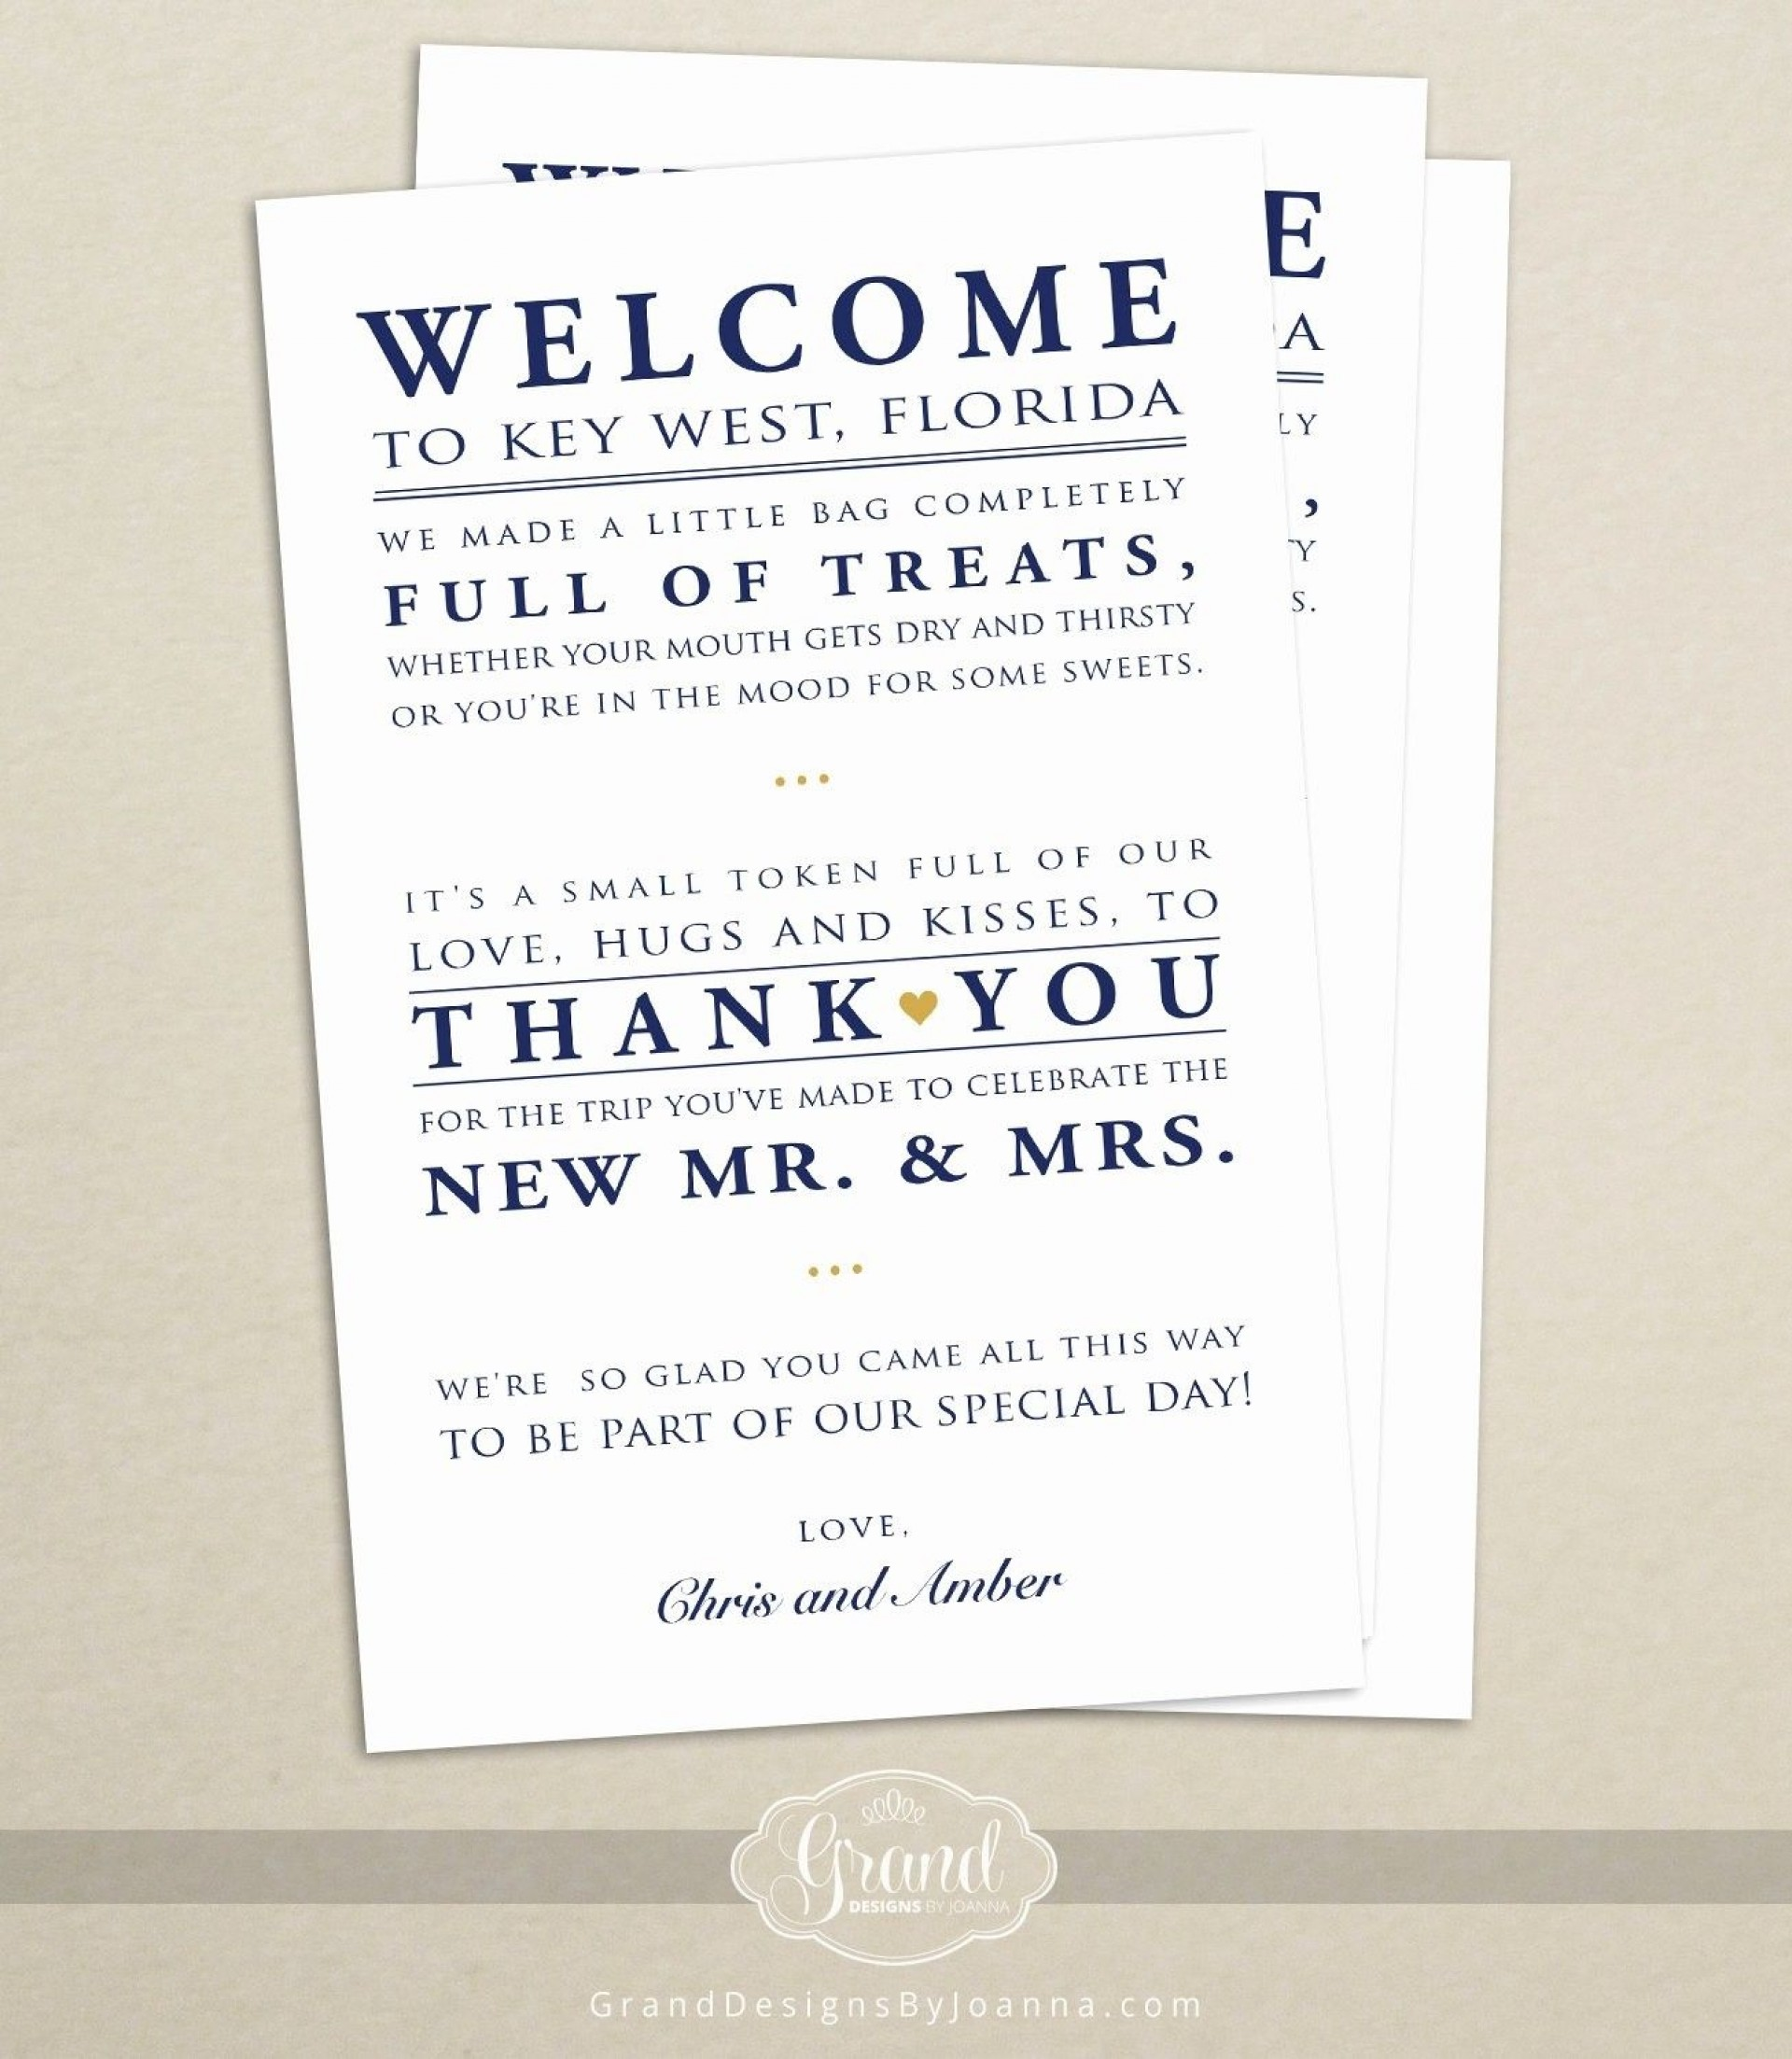 009 Stunning Wedding Guest Welcome Letter Template High Resolution 1920